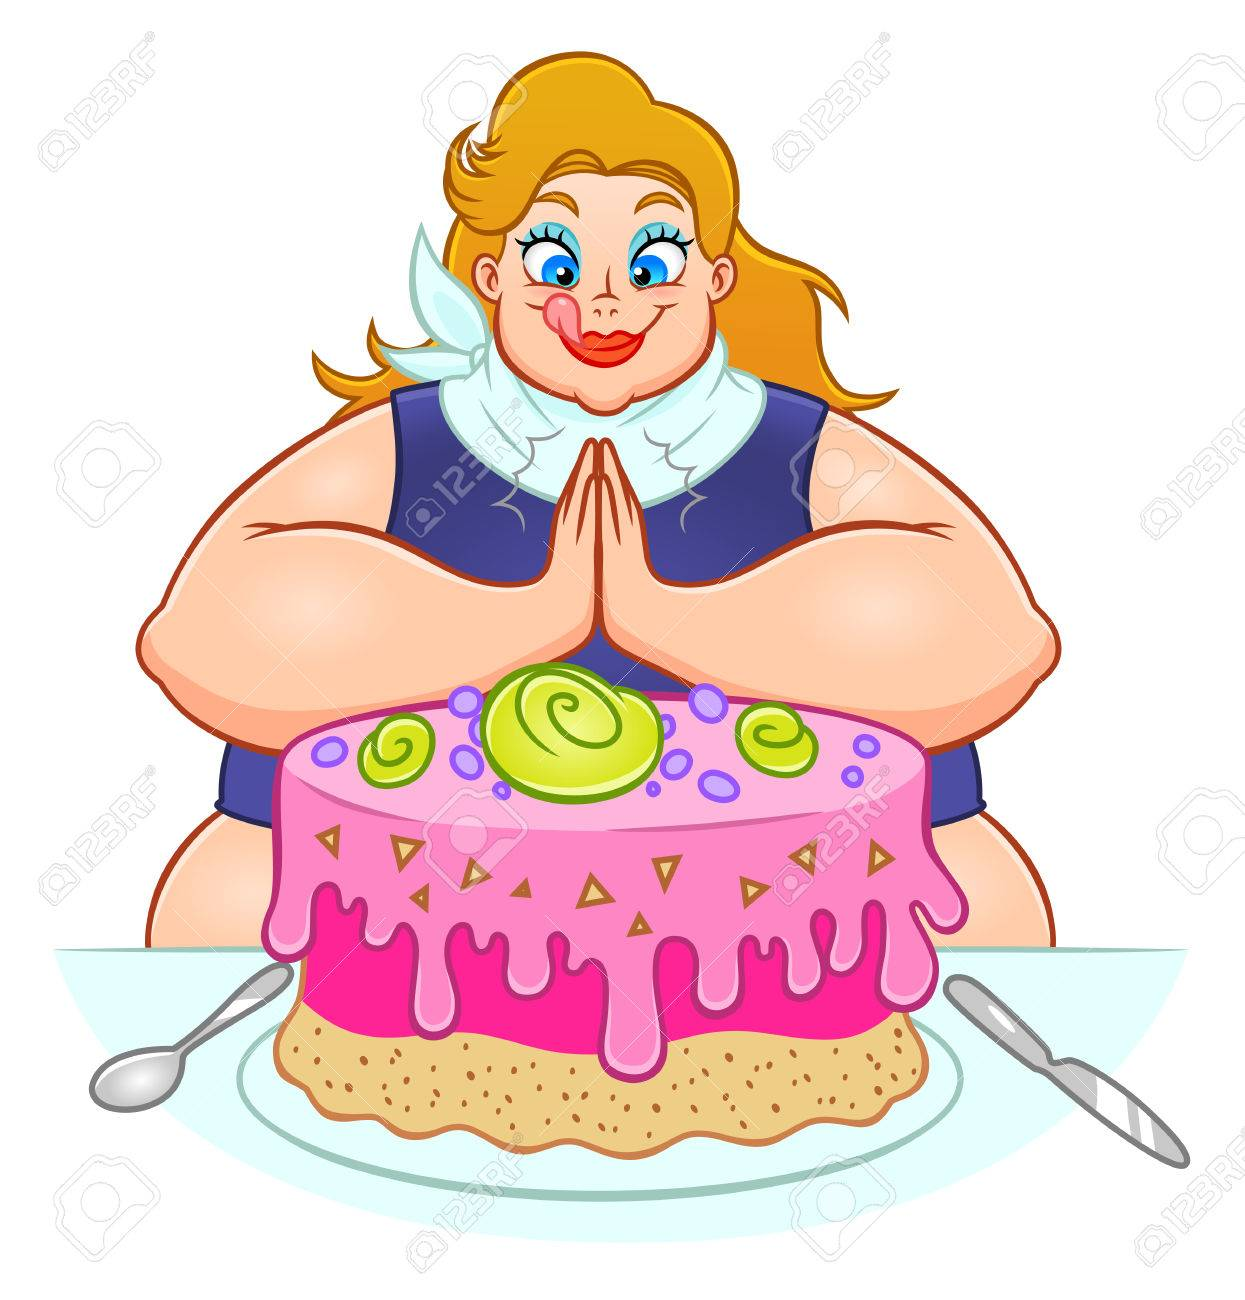 Fat Woman Is Going To Eat A Huge Cake Royalty Free Cliparts